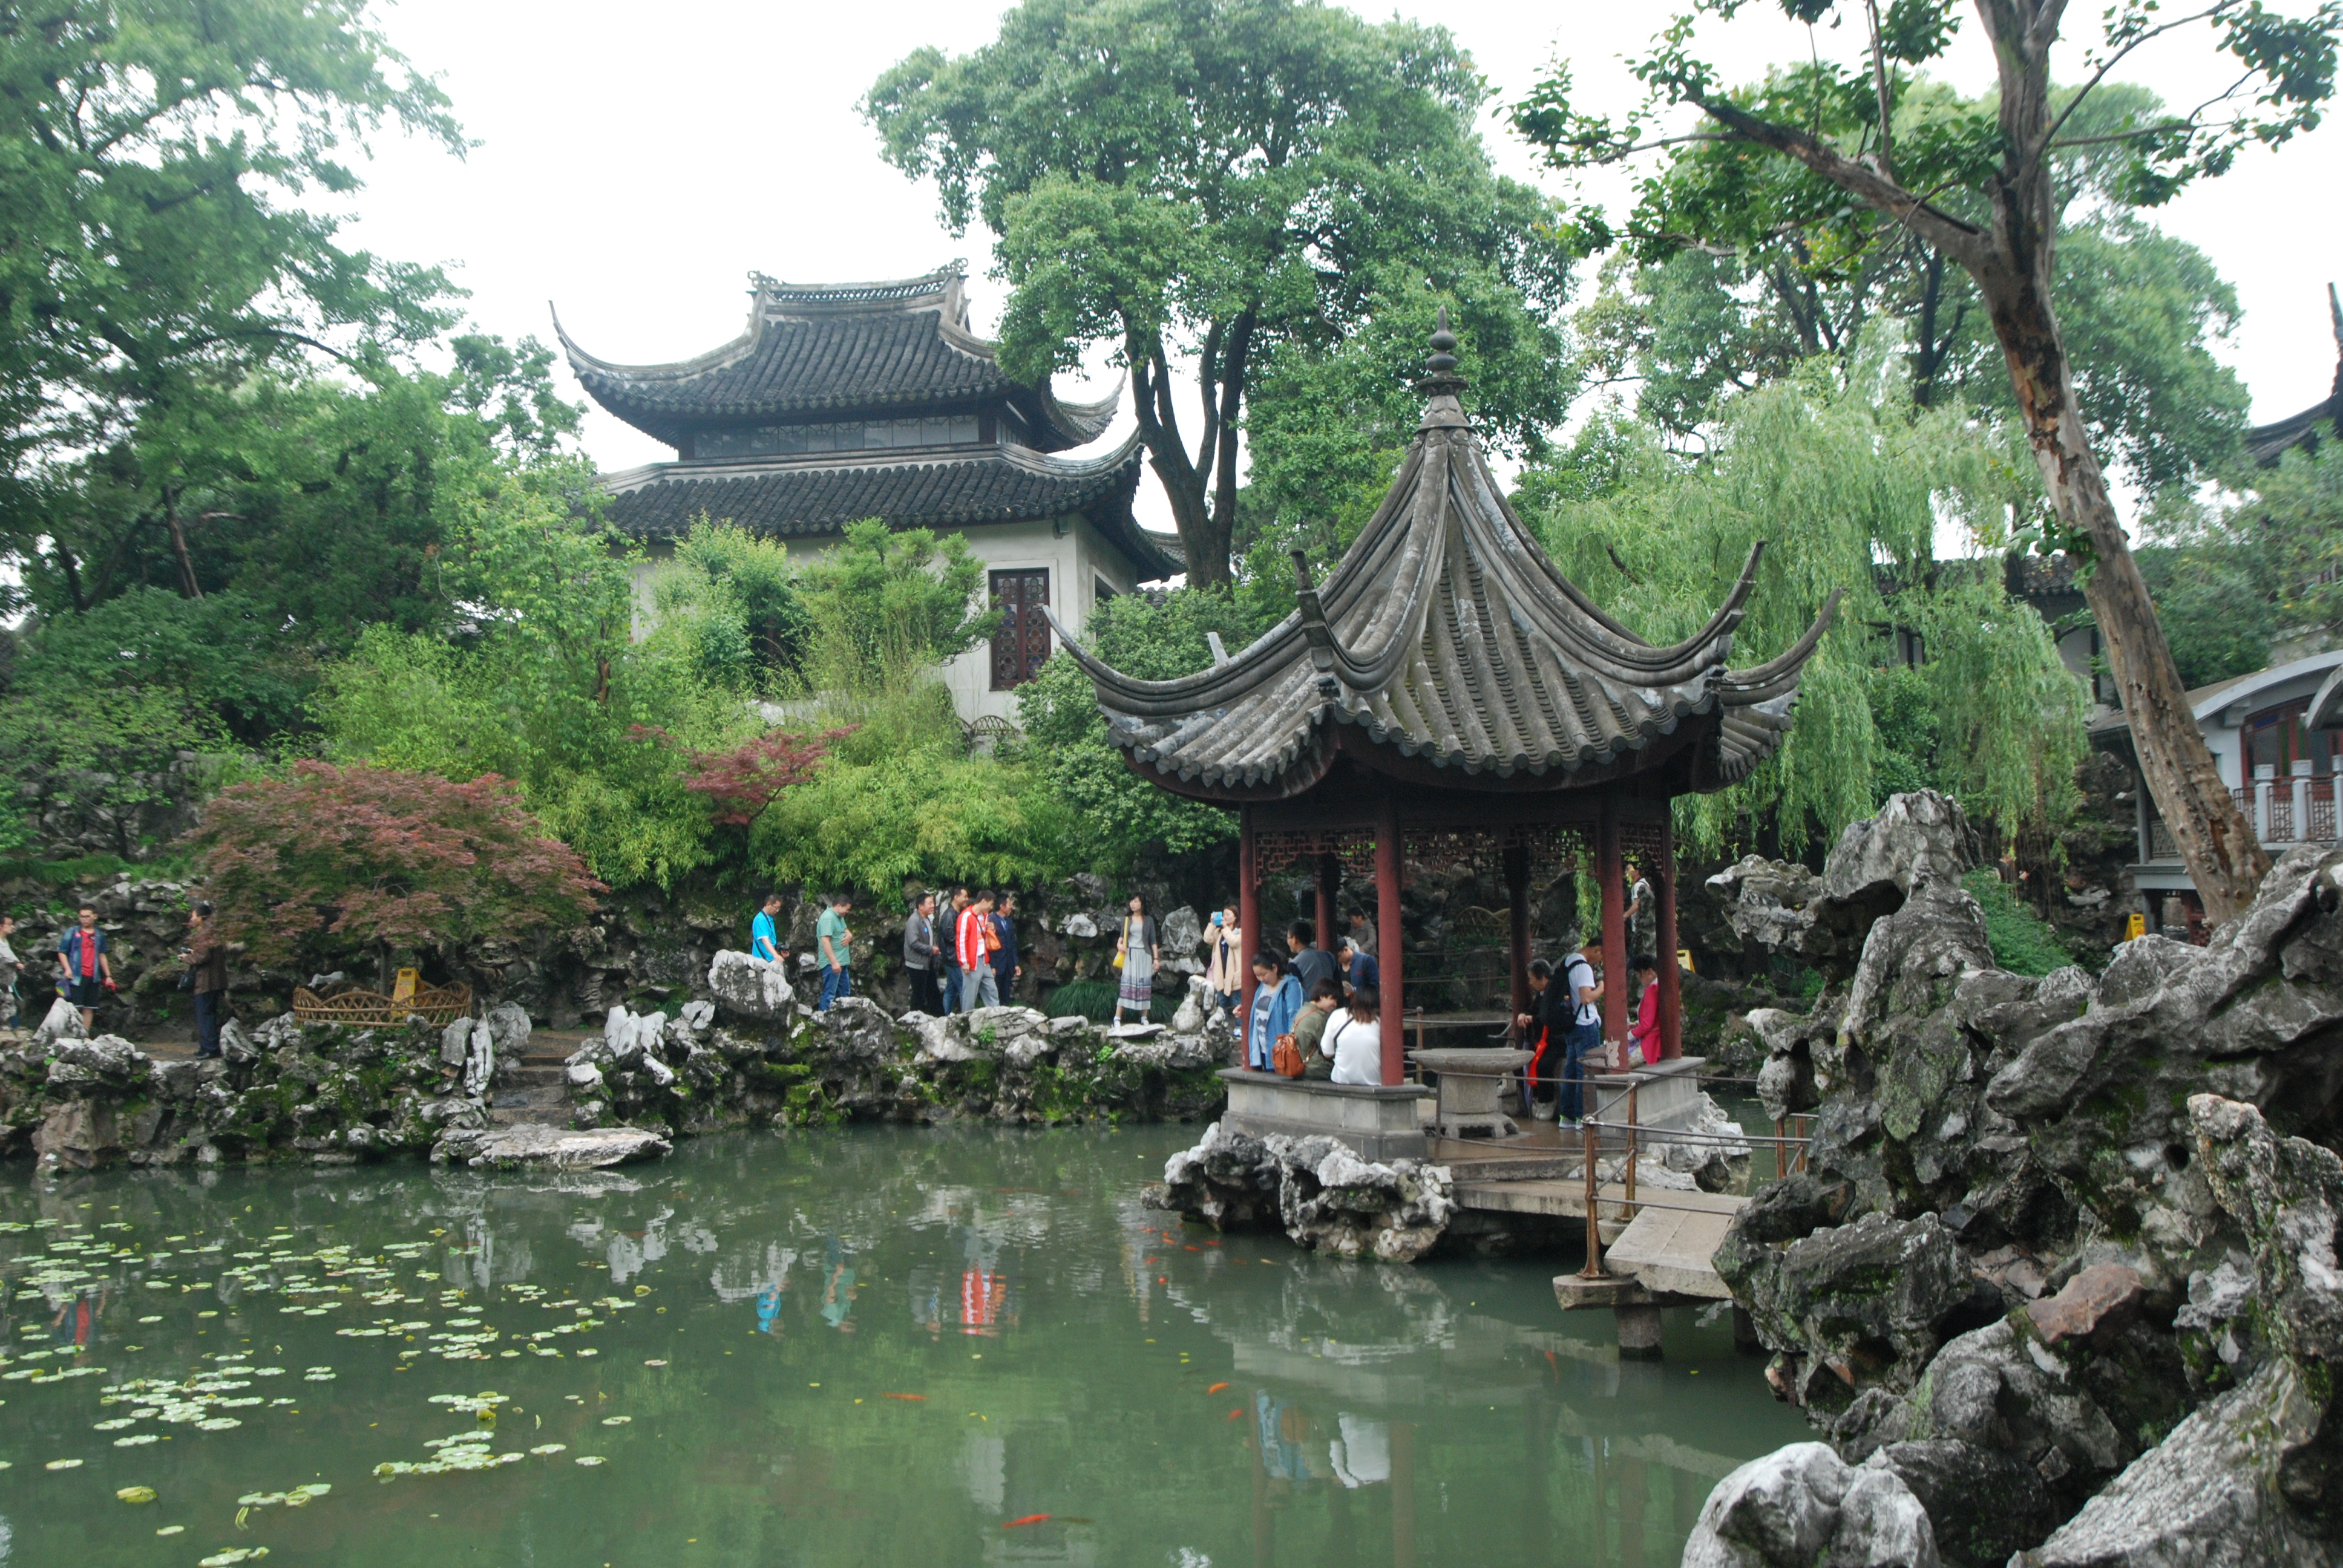 Classical Gardens of Suzhou - China By Bernard Joseph Esposo Guerrero